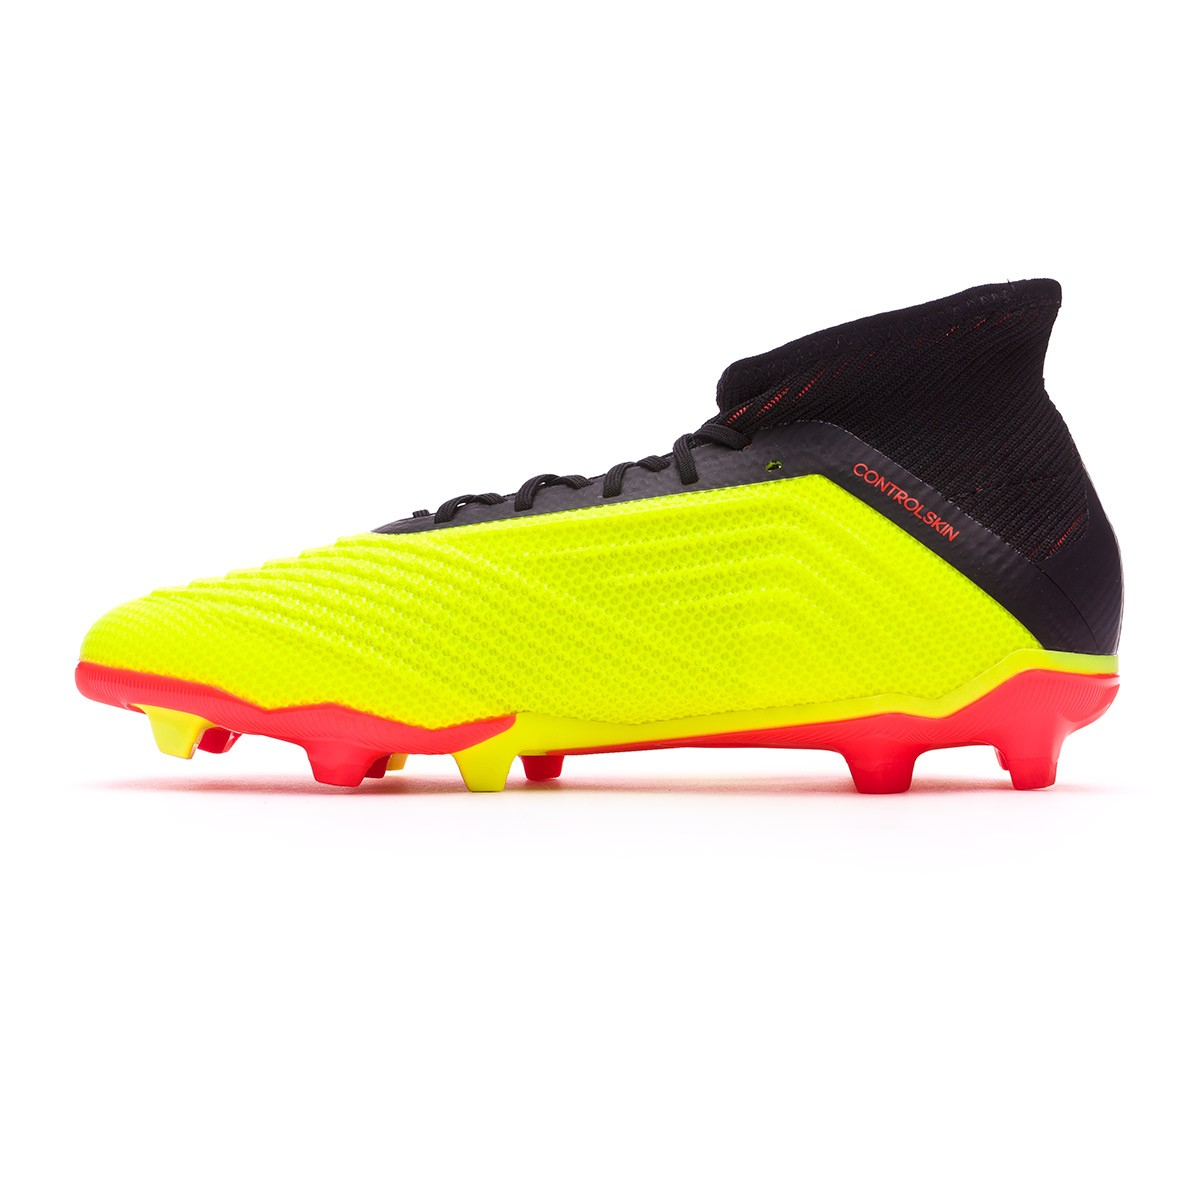 best service 58b7e c9e8d ... Bota Predator 18.1 FG Niño Solar yellow-Black-Solar red. CATEGORY